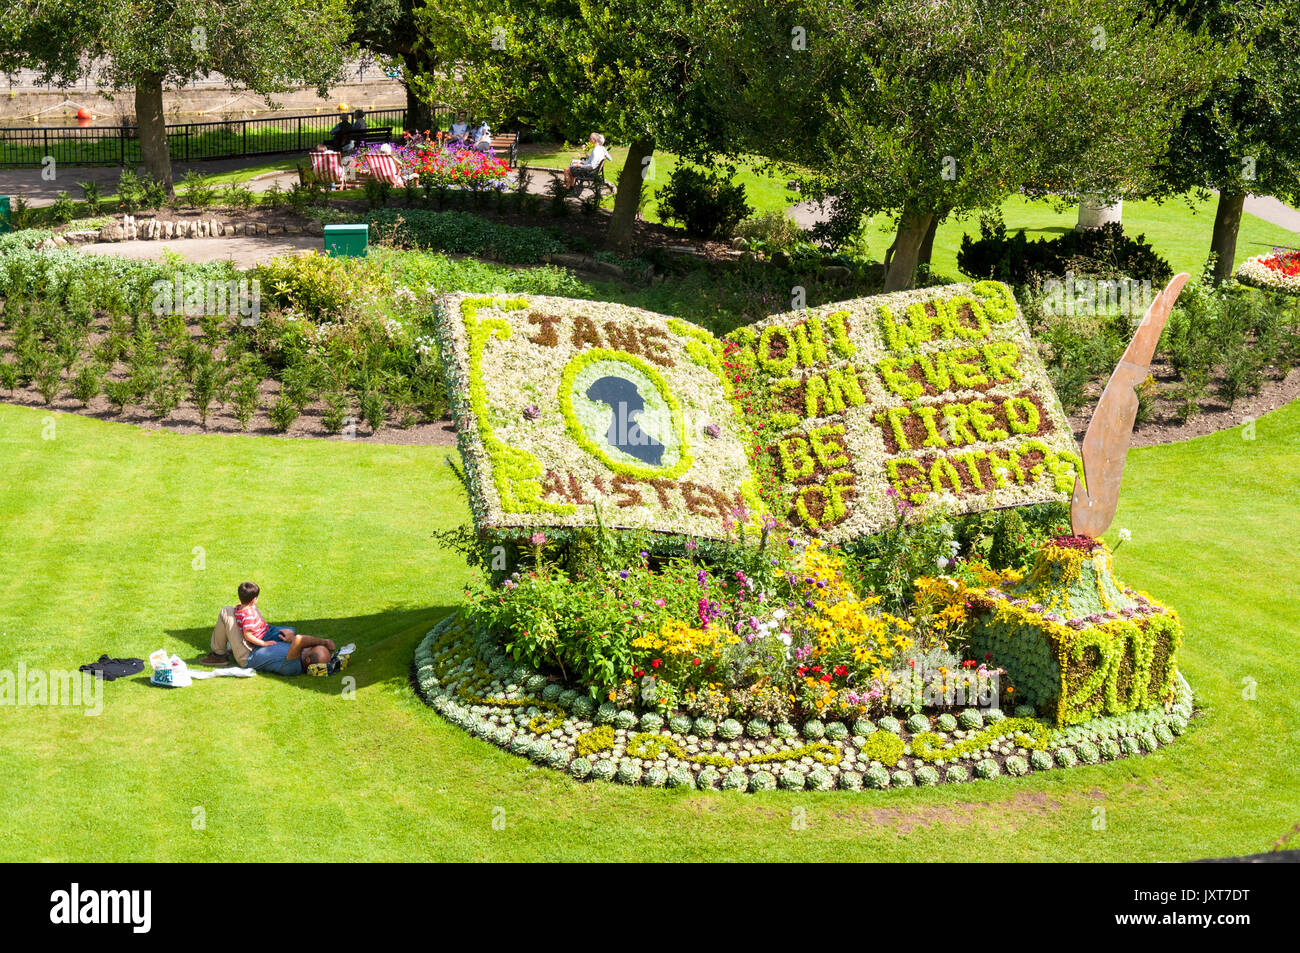 Bath, Somerset, UK. 17th Aug, 2017. UK Weather. People enjoy the sun and a floral tribute for the Annual International Jane Austen Festival in Bath UK. 2017 is an important bicentenary year being both the 200th anniversary of the Author's death and the publication of her two Bath novels Northanger Abbey and Persuasion, in Parade Gardens in the centre of the spa city. Credit: Richard Wayman/Alamy Live News - Stock Image